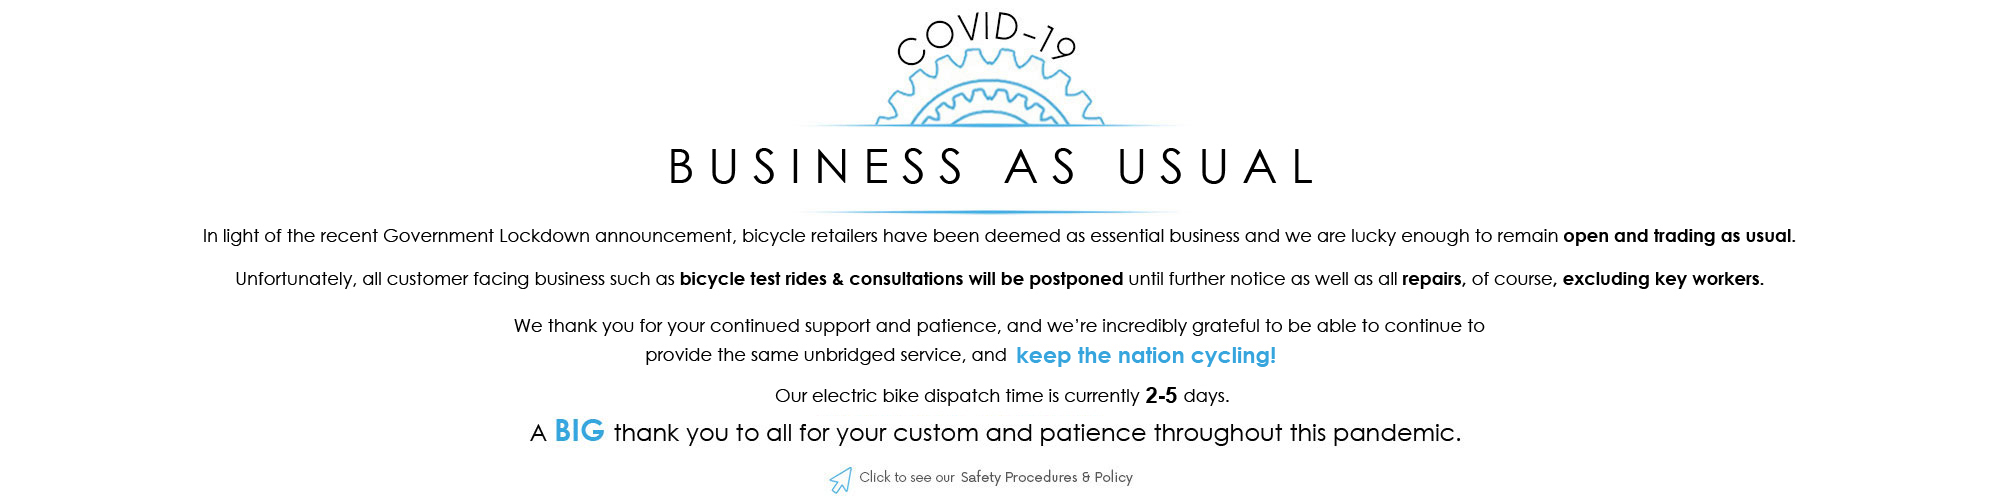 COVID-19 - Business Going Forward at E-Bikes Direct